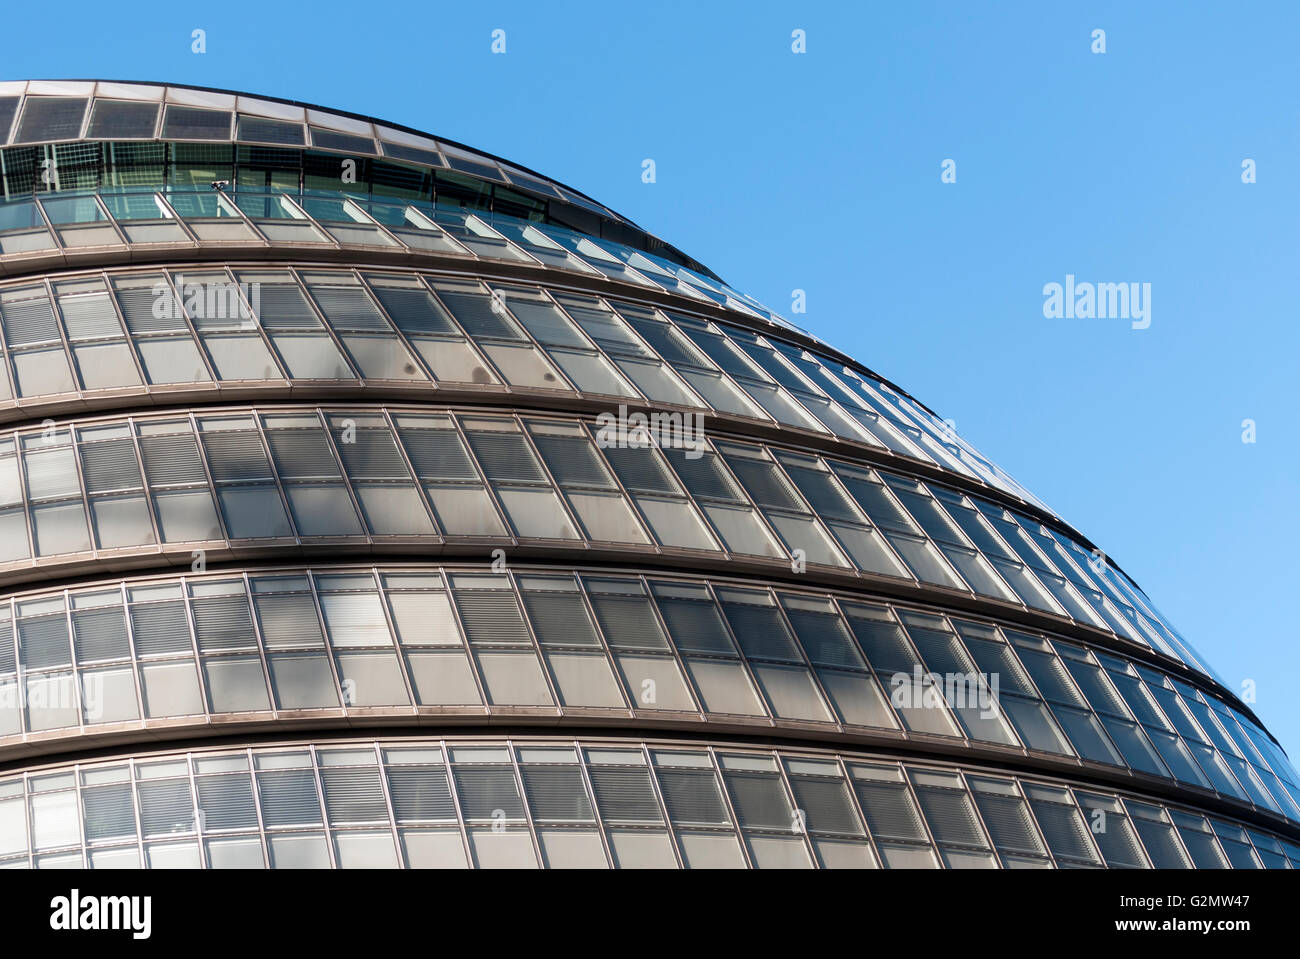 Facade of London City Hall, Greater London Authority or GLA Building, designed by Norman Foster, Southwark, London - Stock Image